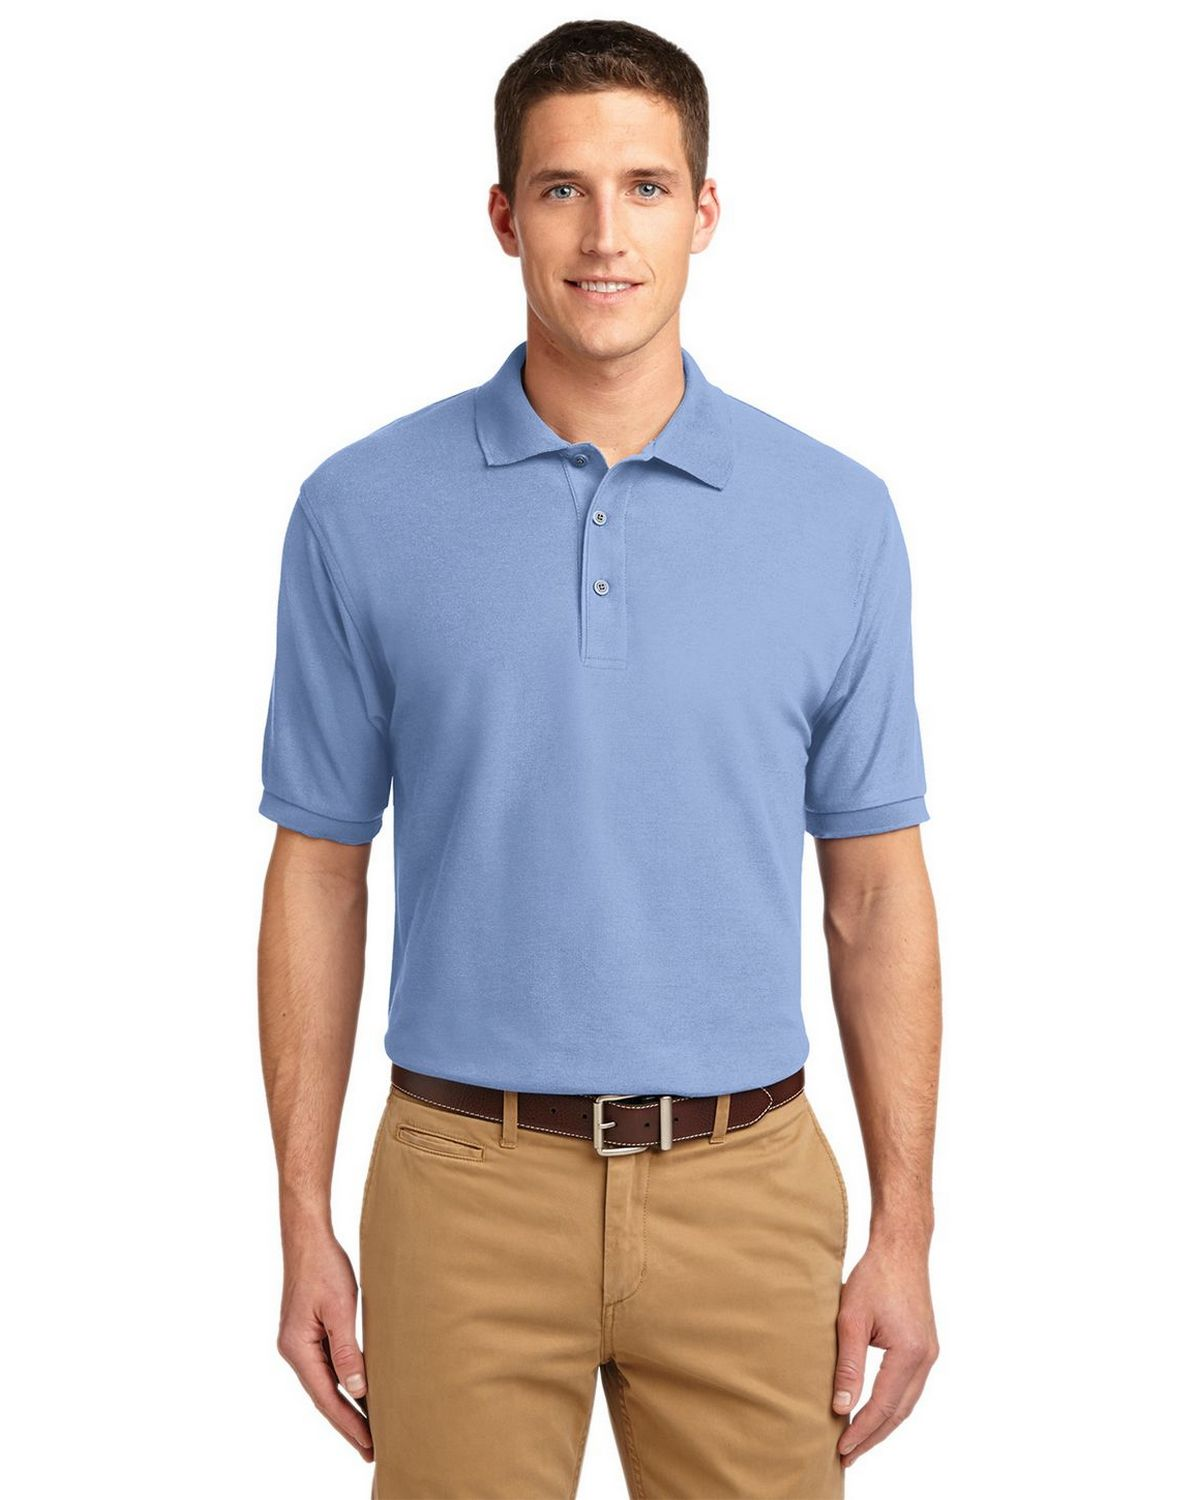 Port Authority K500 Men's Silk Touch Polo - Light Blue - XS #silk